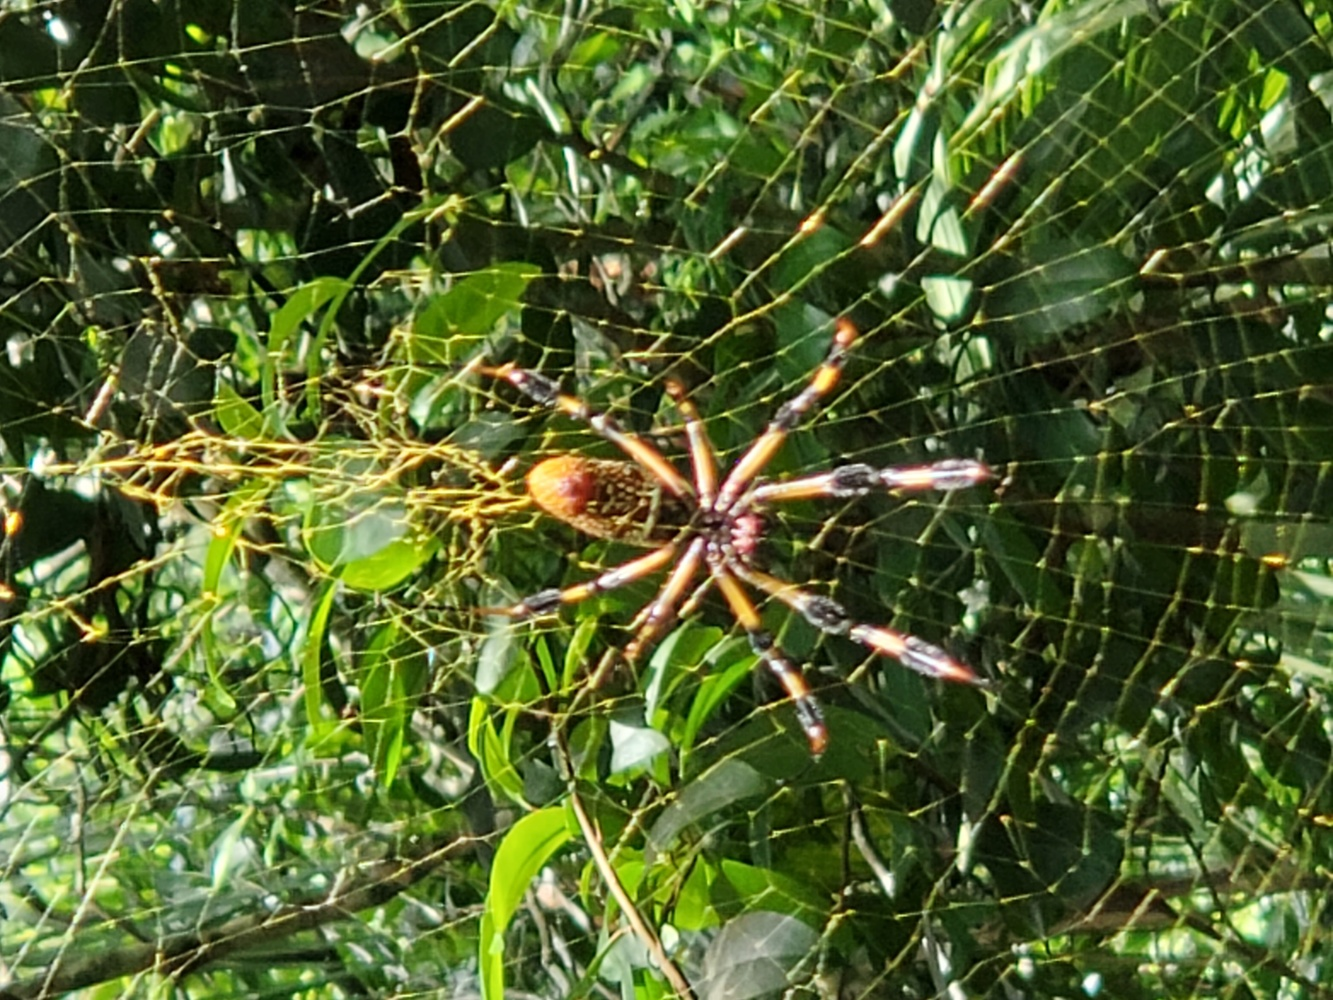 Golden orb weaver by Kathy DITTON